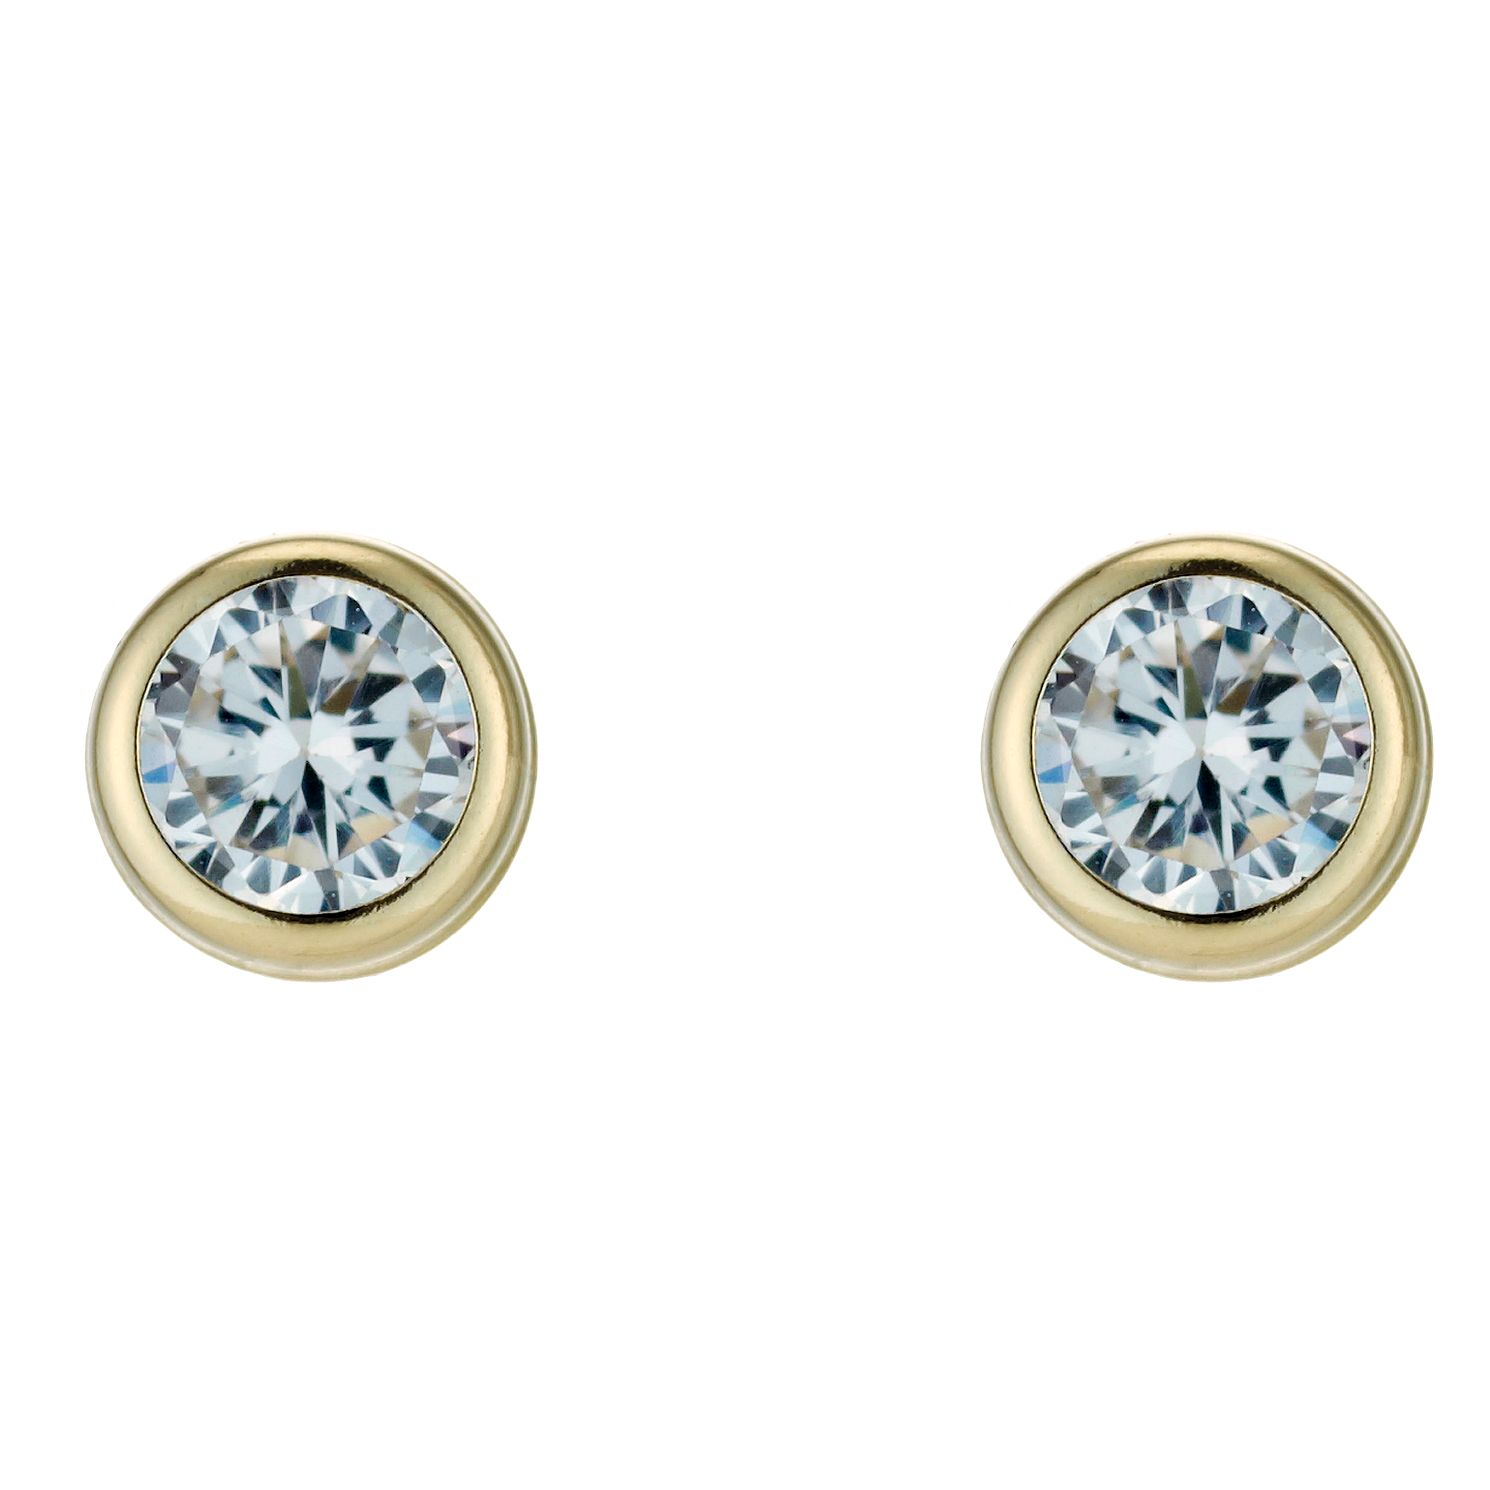 9ct Gold Cubic Zirconia Solitaire Stud Earrings - Product number 3054470